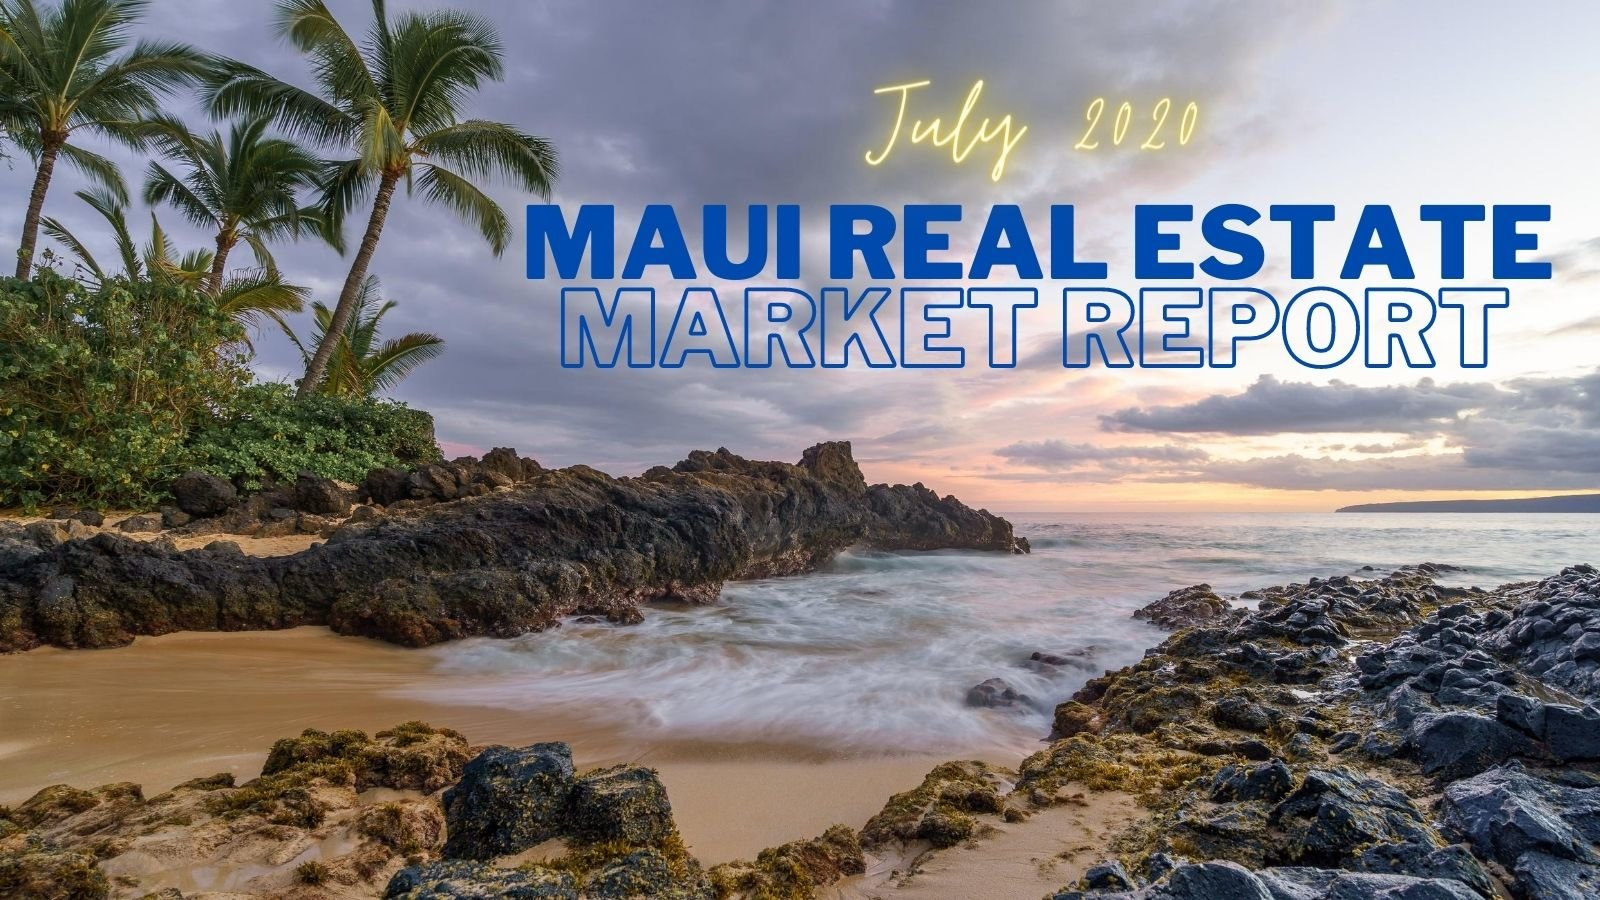 Maui Real Estate Market